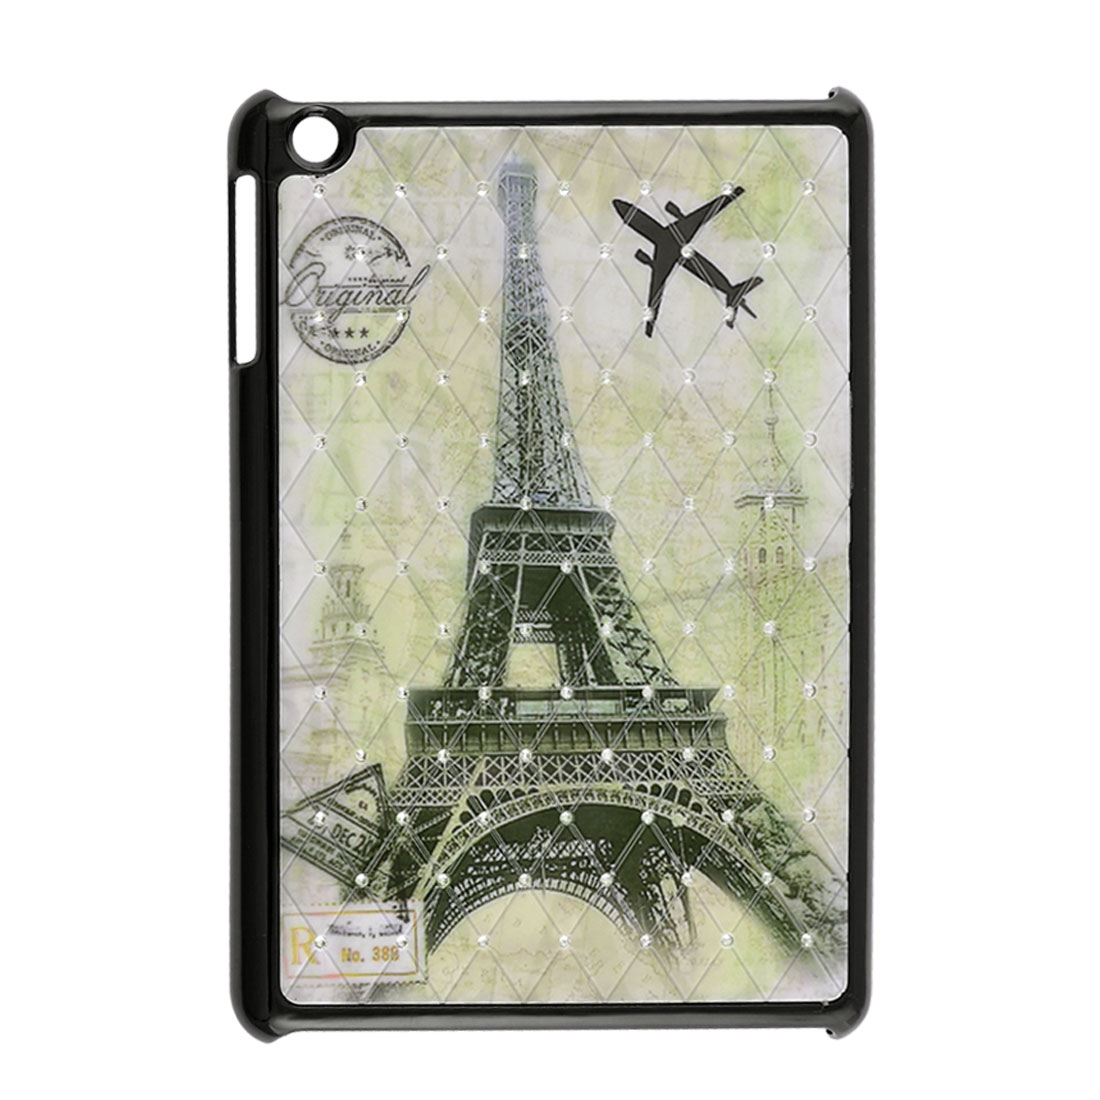 Eiffel Tower Plane Postmark Prints Rhinestone Pale Green Black Hard Back Case for iPad Mini